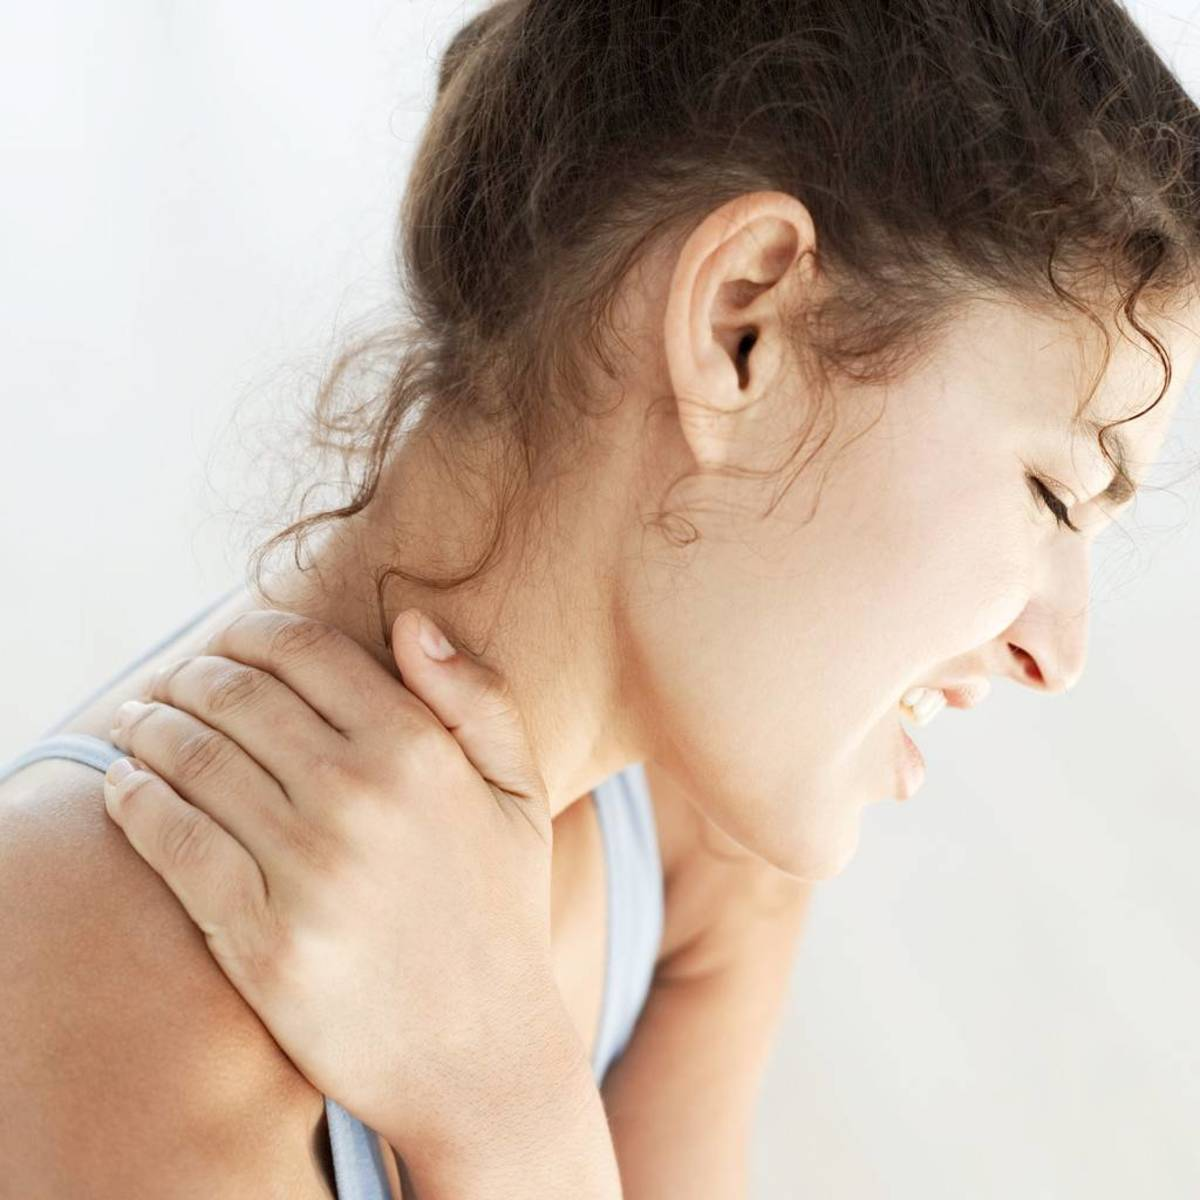 Acute Pain can be tricky to treat as a nurse, due to the new experience of the pain by the patient.